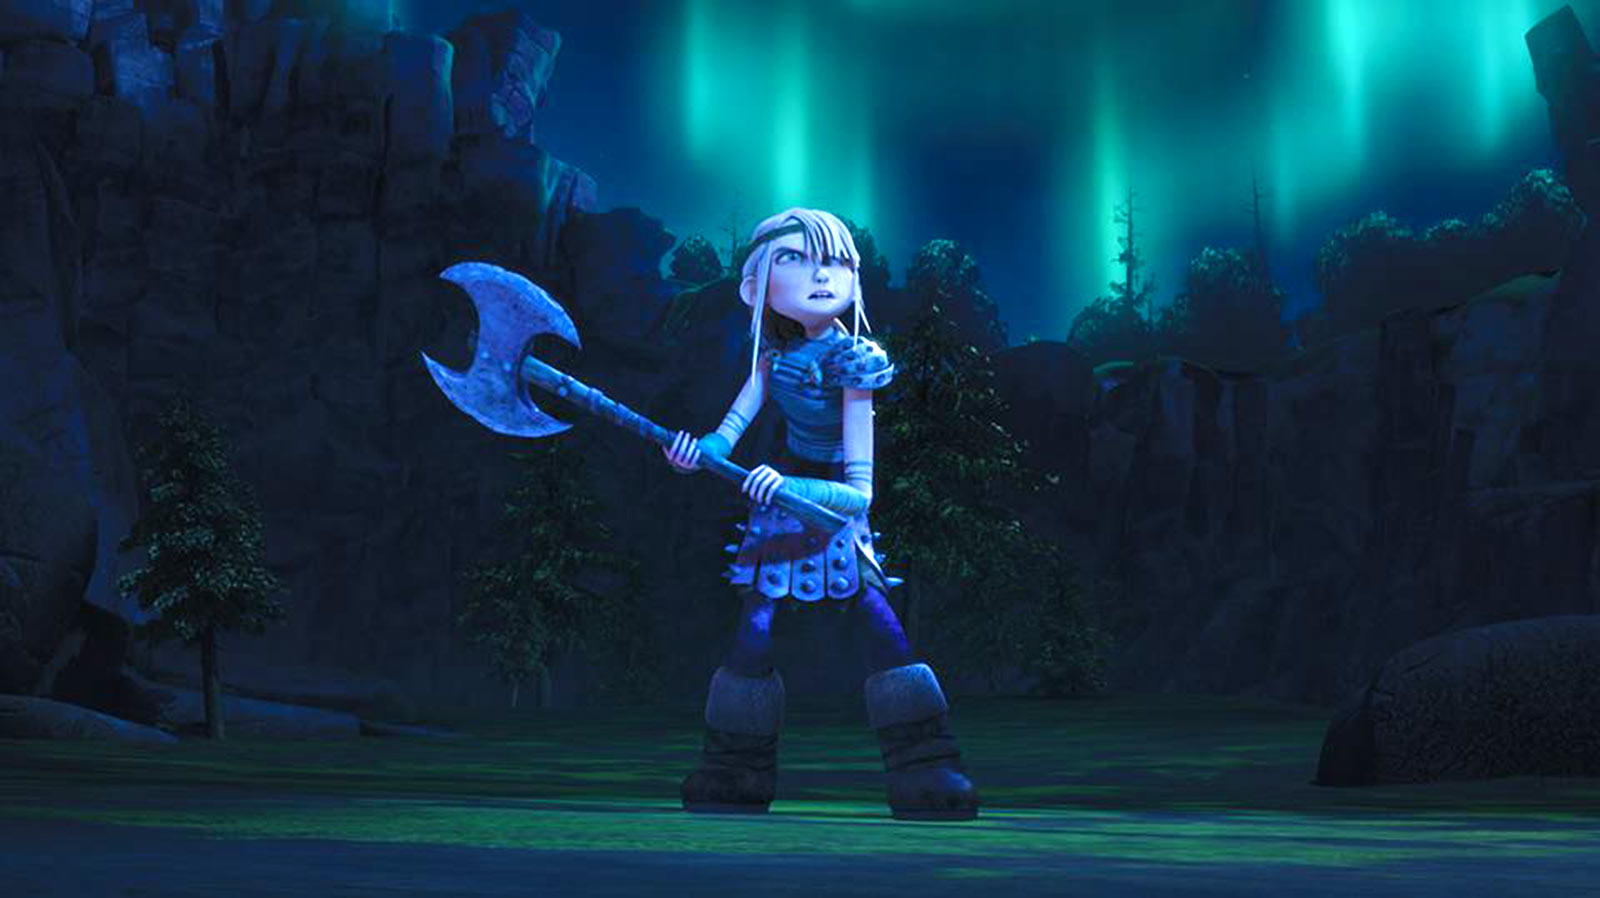 How To Train Your Dragon Wallpaper Astrid Free Hd 1600x898